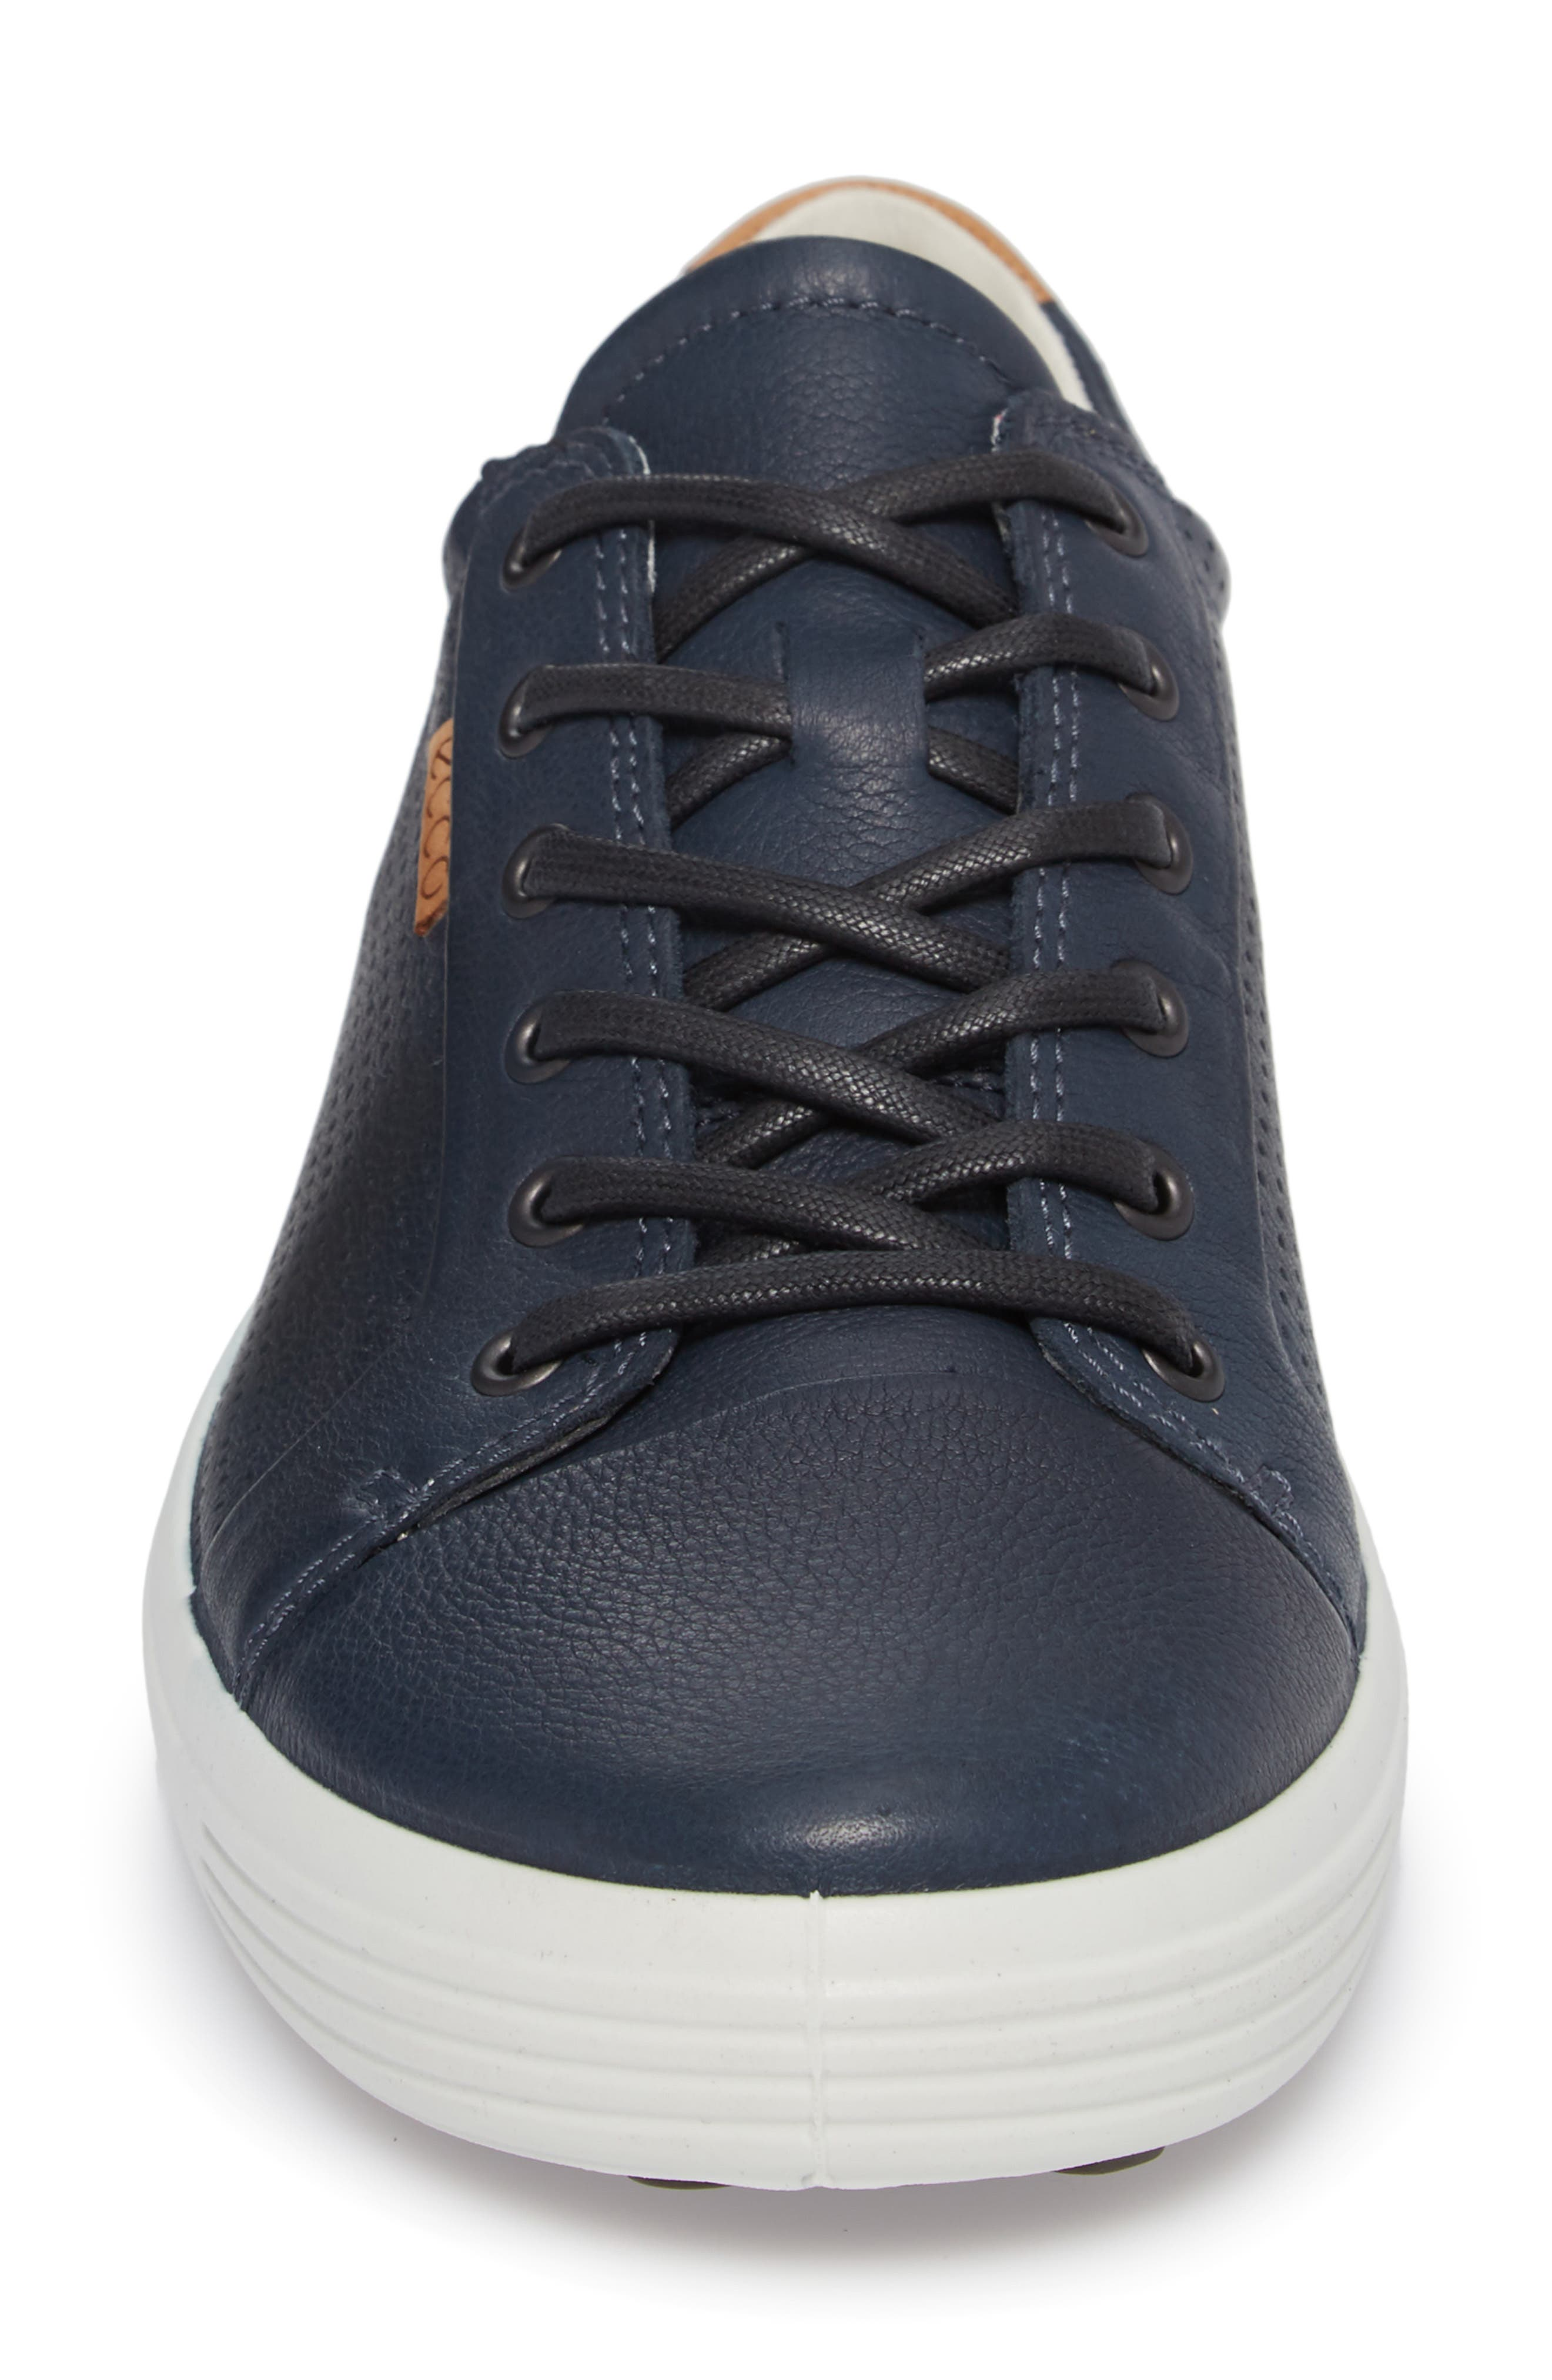 'Soft 7' Sneaker,                             Alternate thumbnail 3, color,                             Navy Leather